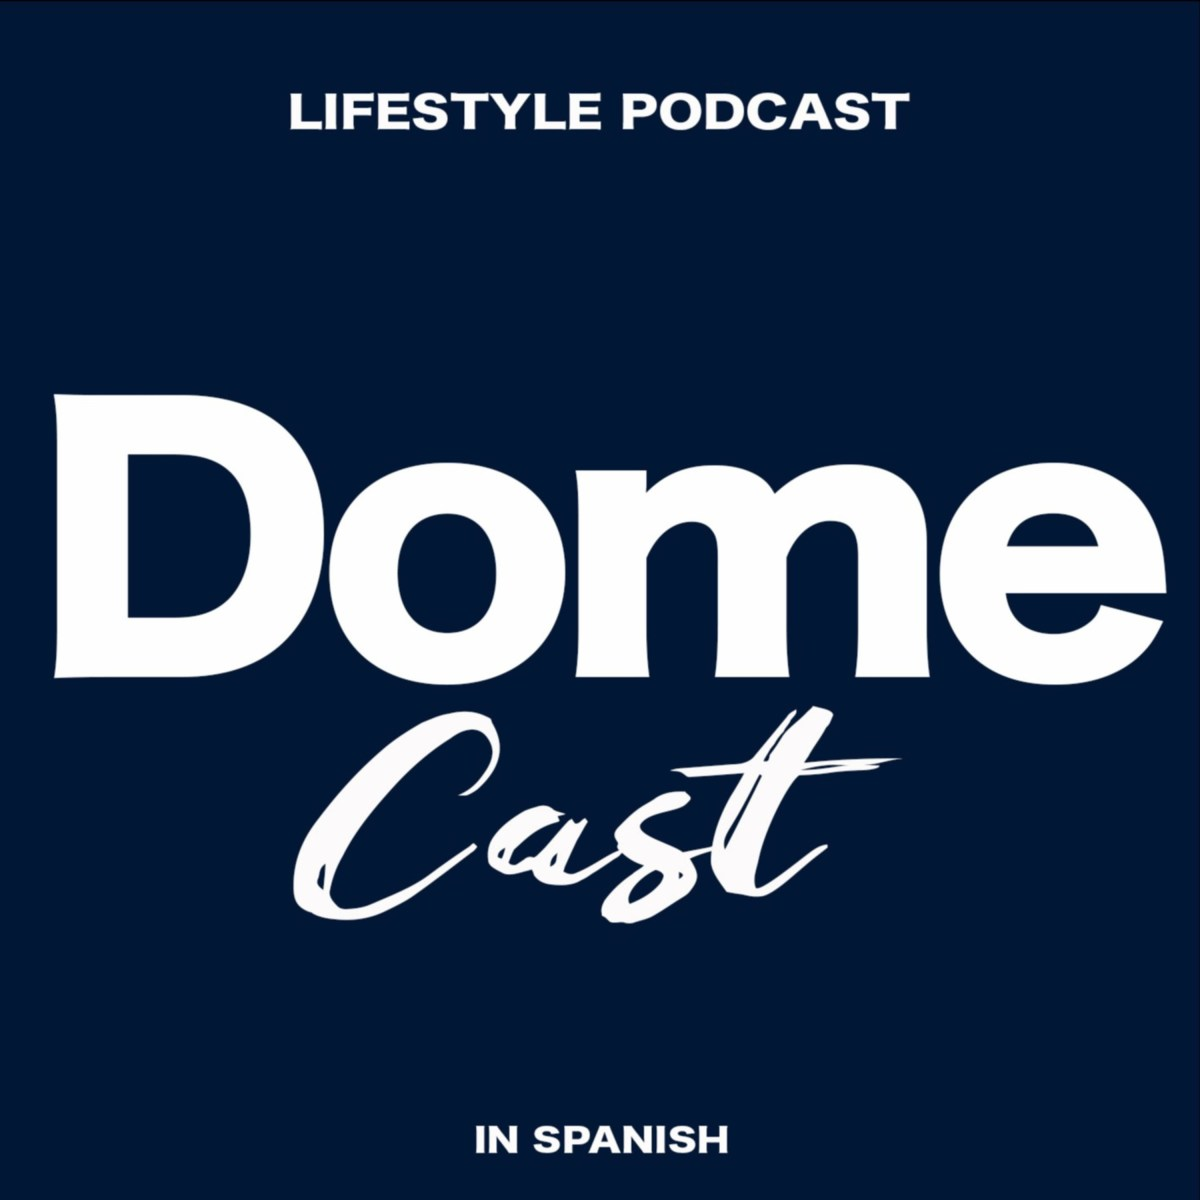 DOME CAST LYFESTYLE PODCAST